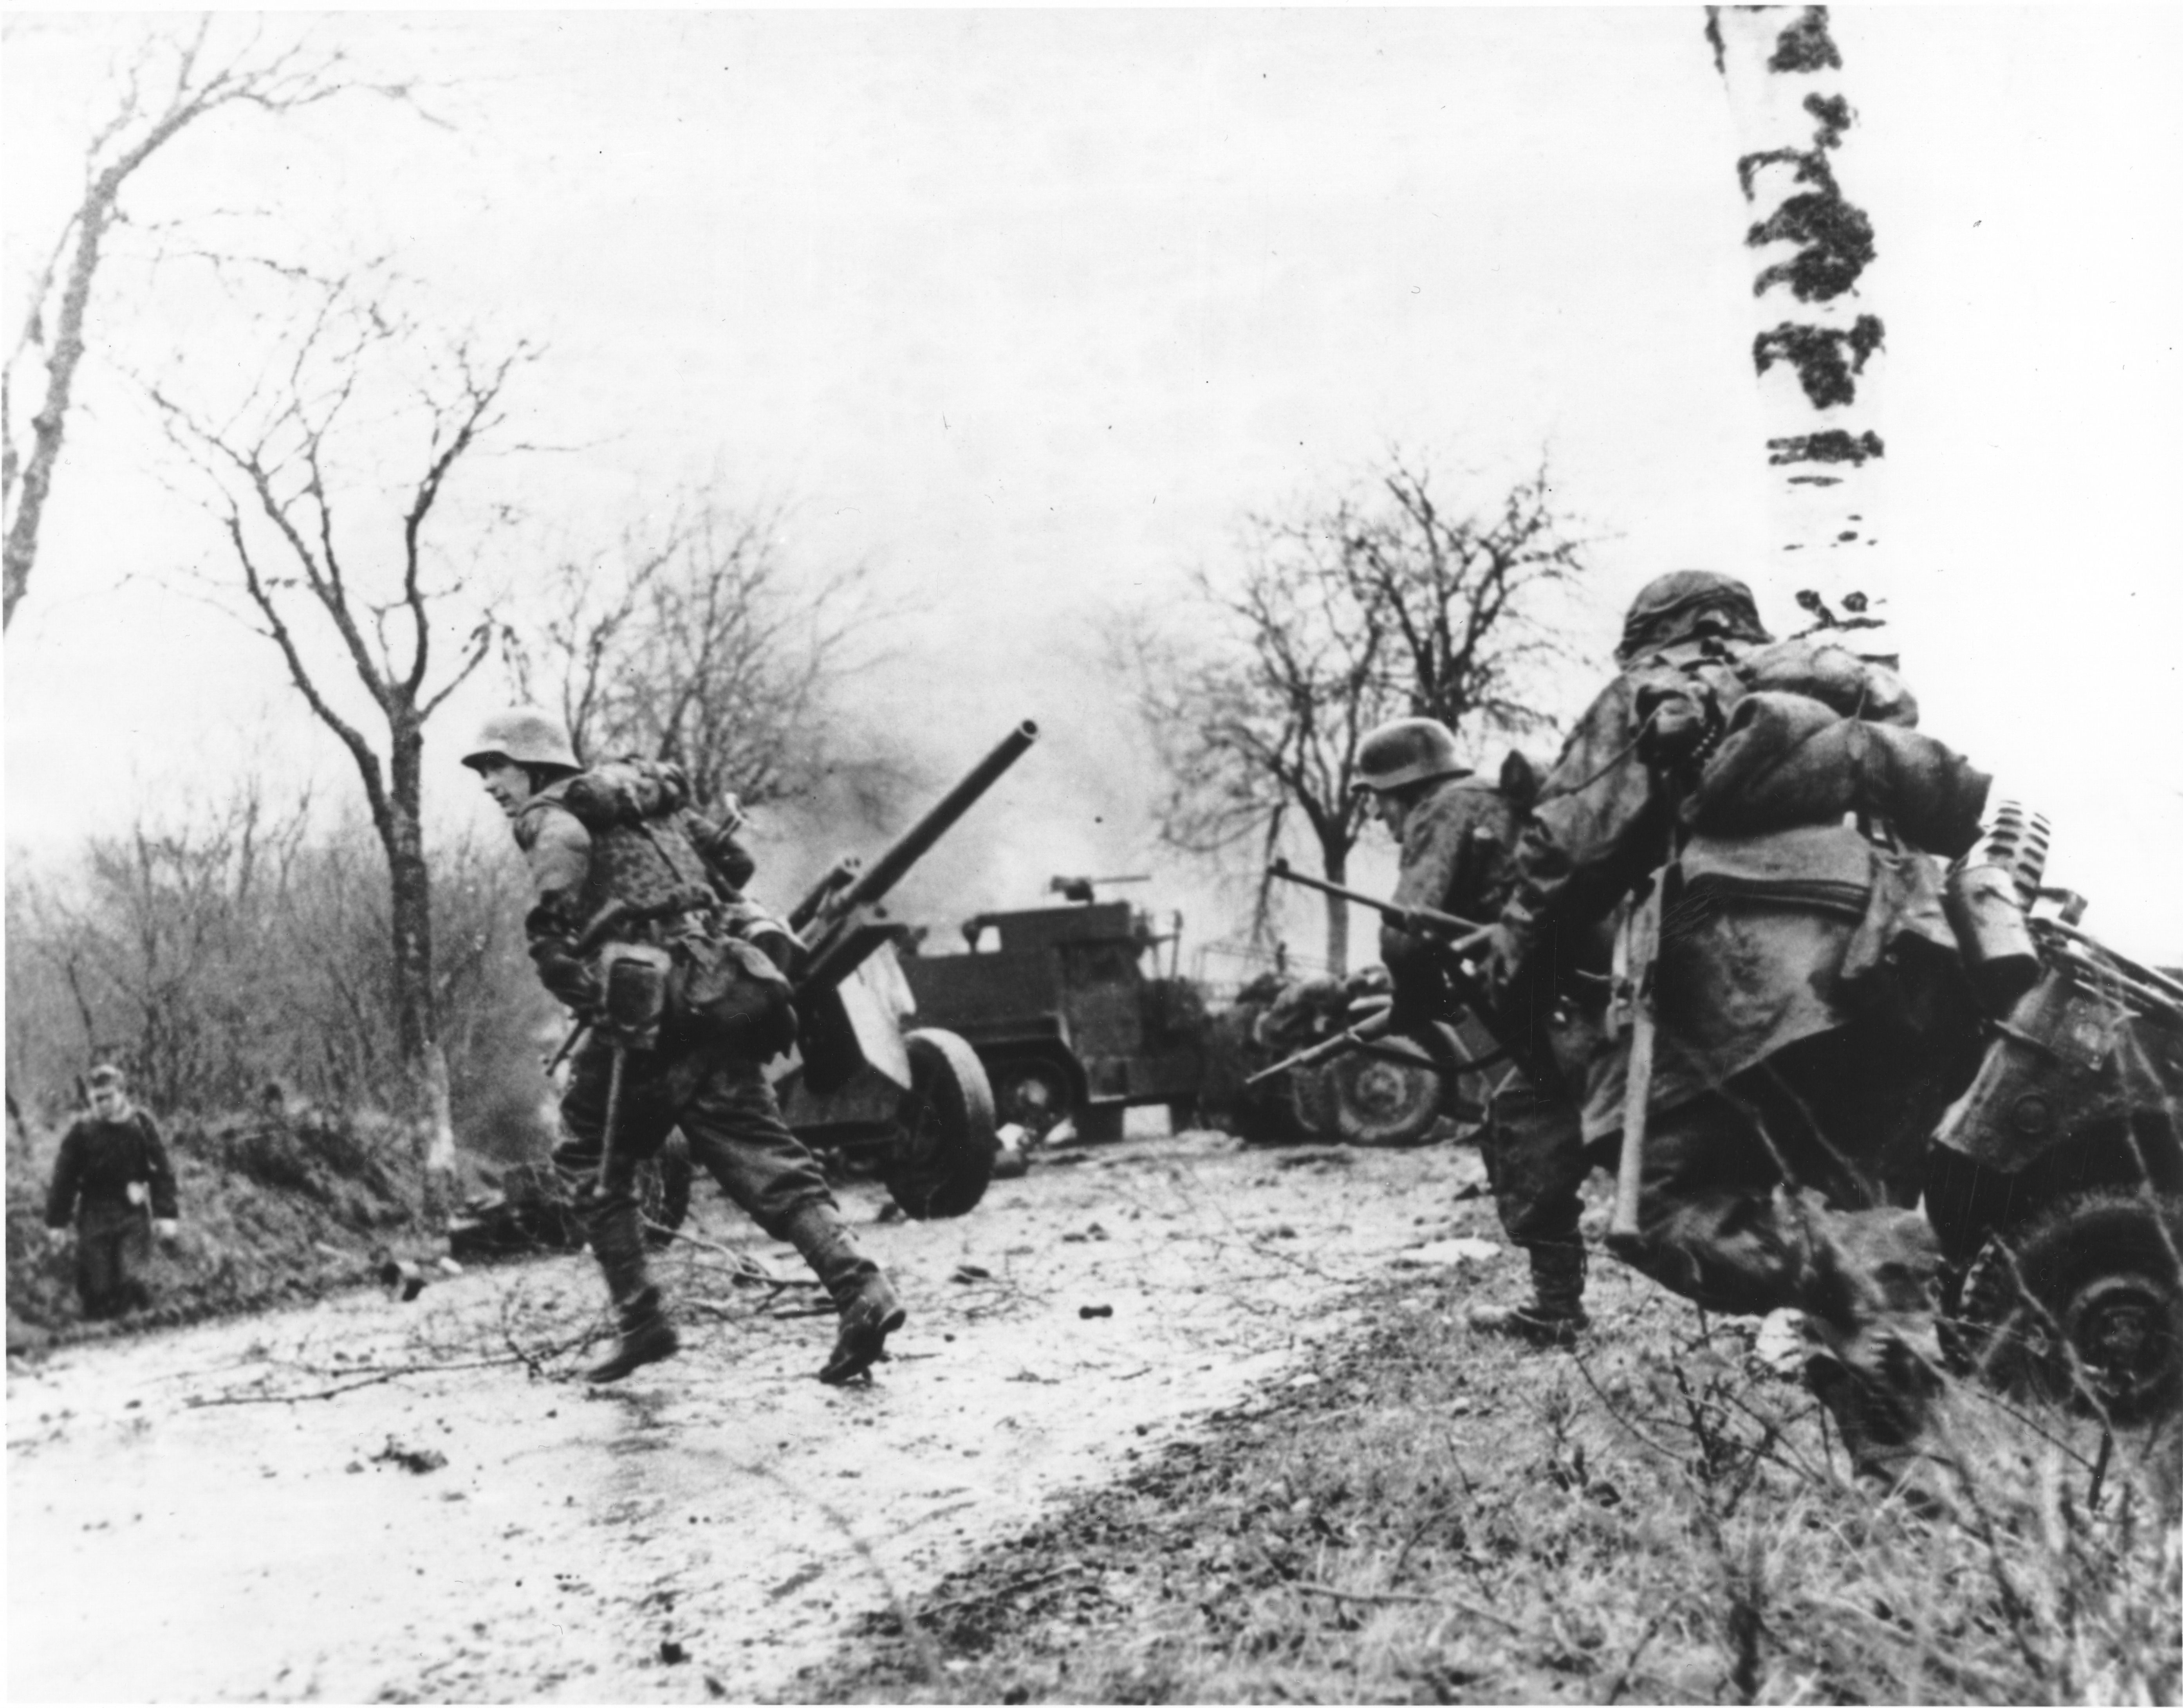 German Troops advancing past abandoned American equipment